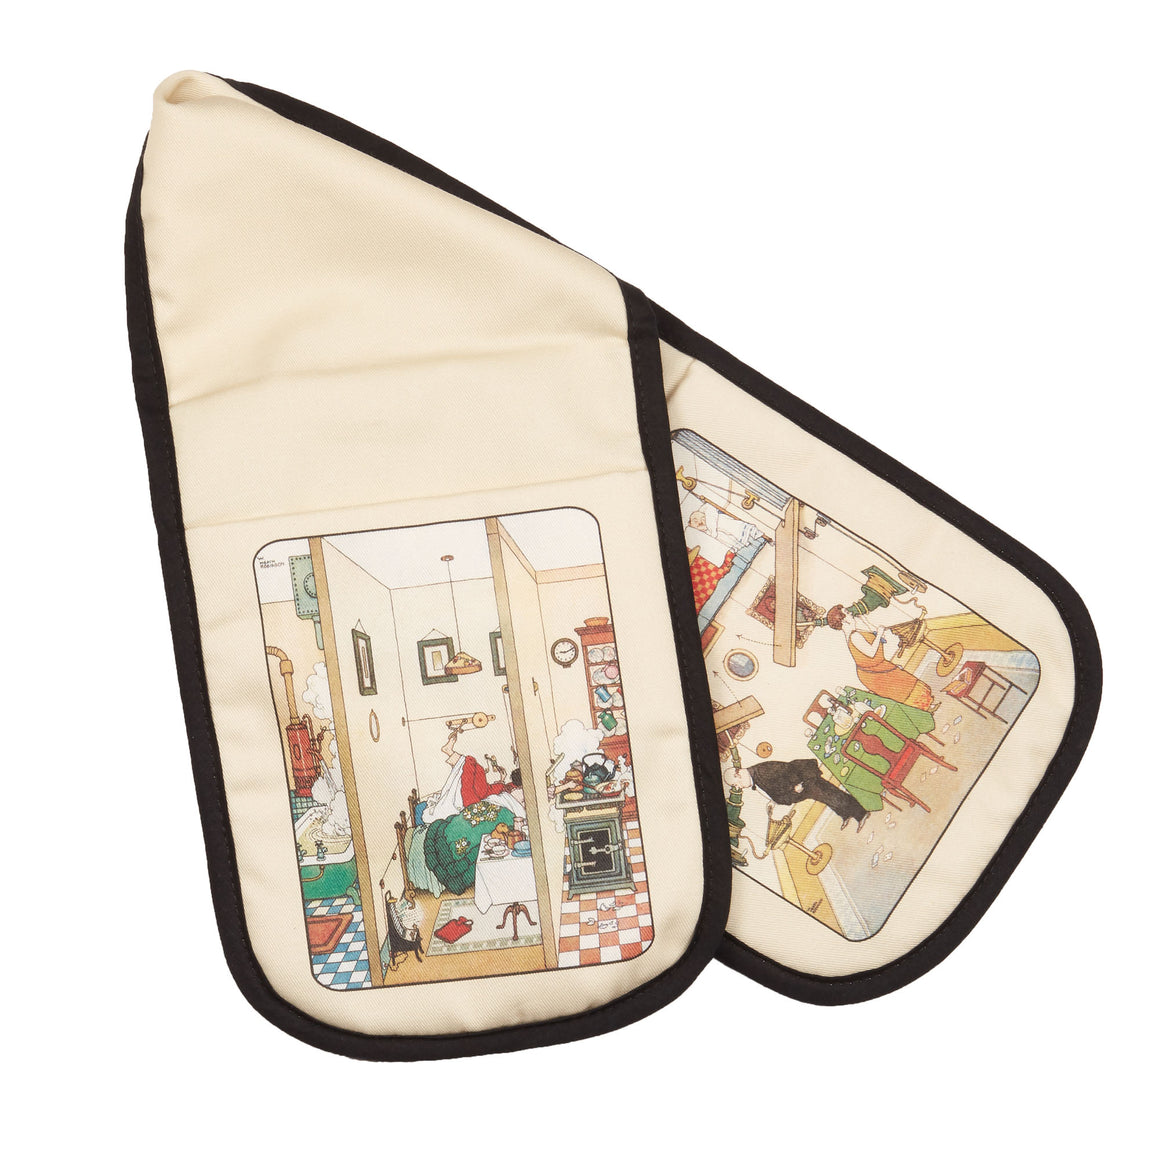 Double Oven Glove - Spare Room & Bedroom Comfort